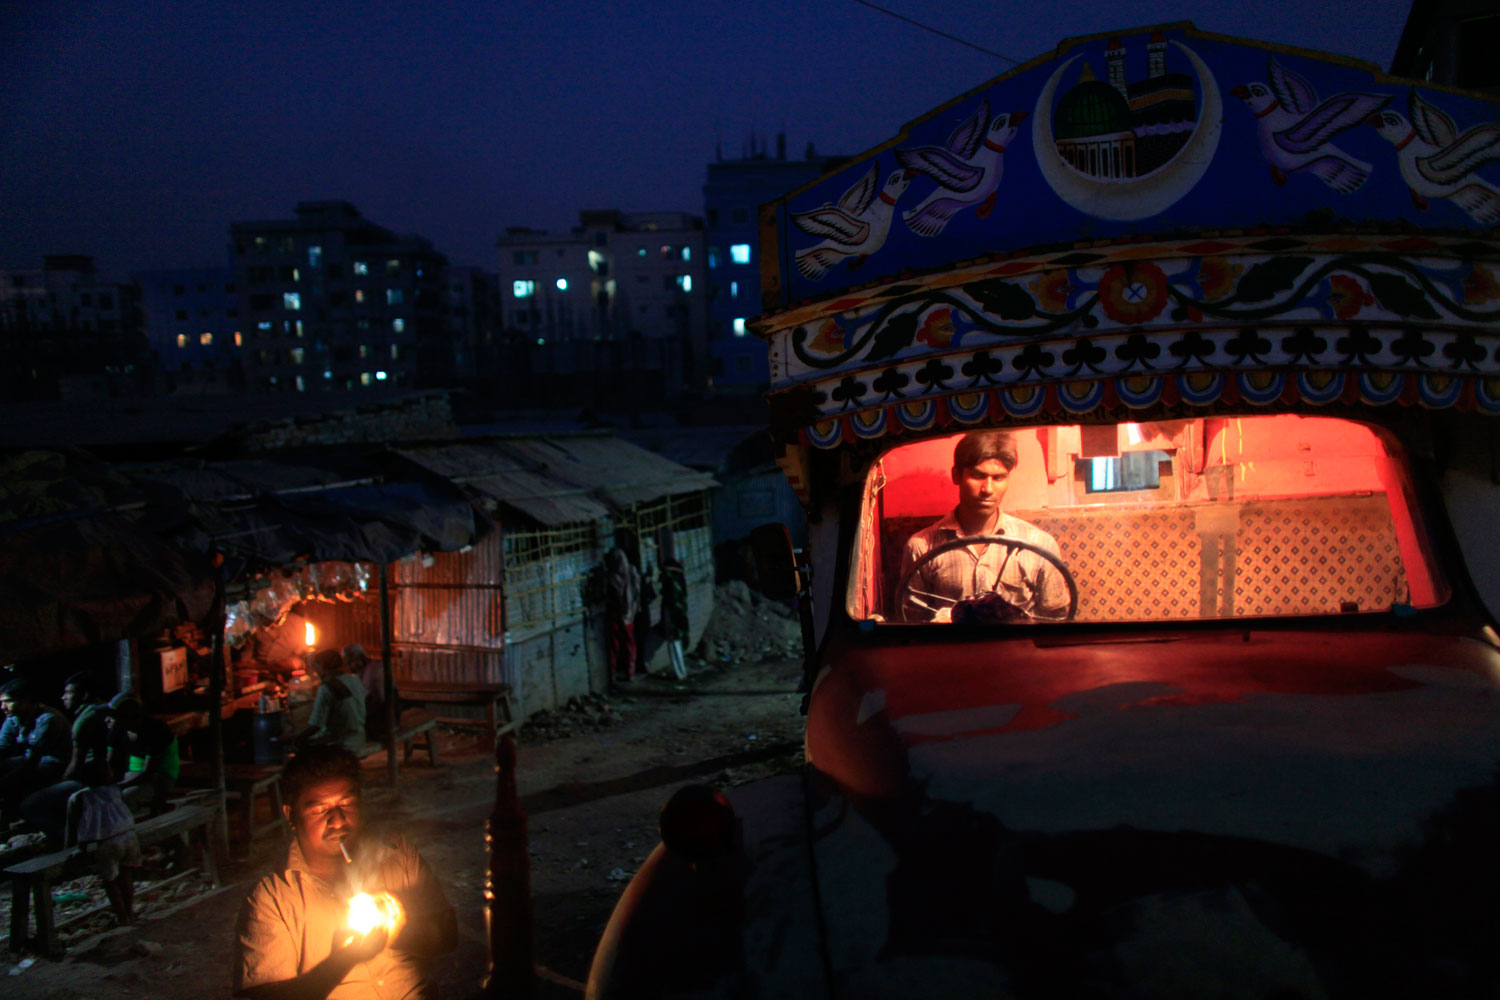 March 1, 2012. Drivers gather in front of a truck on the outskirts of Dhaka